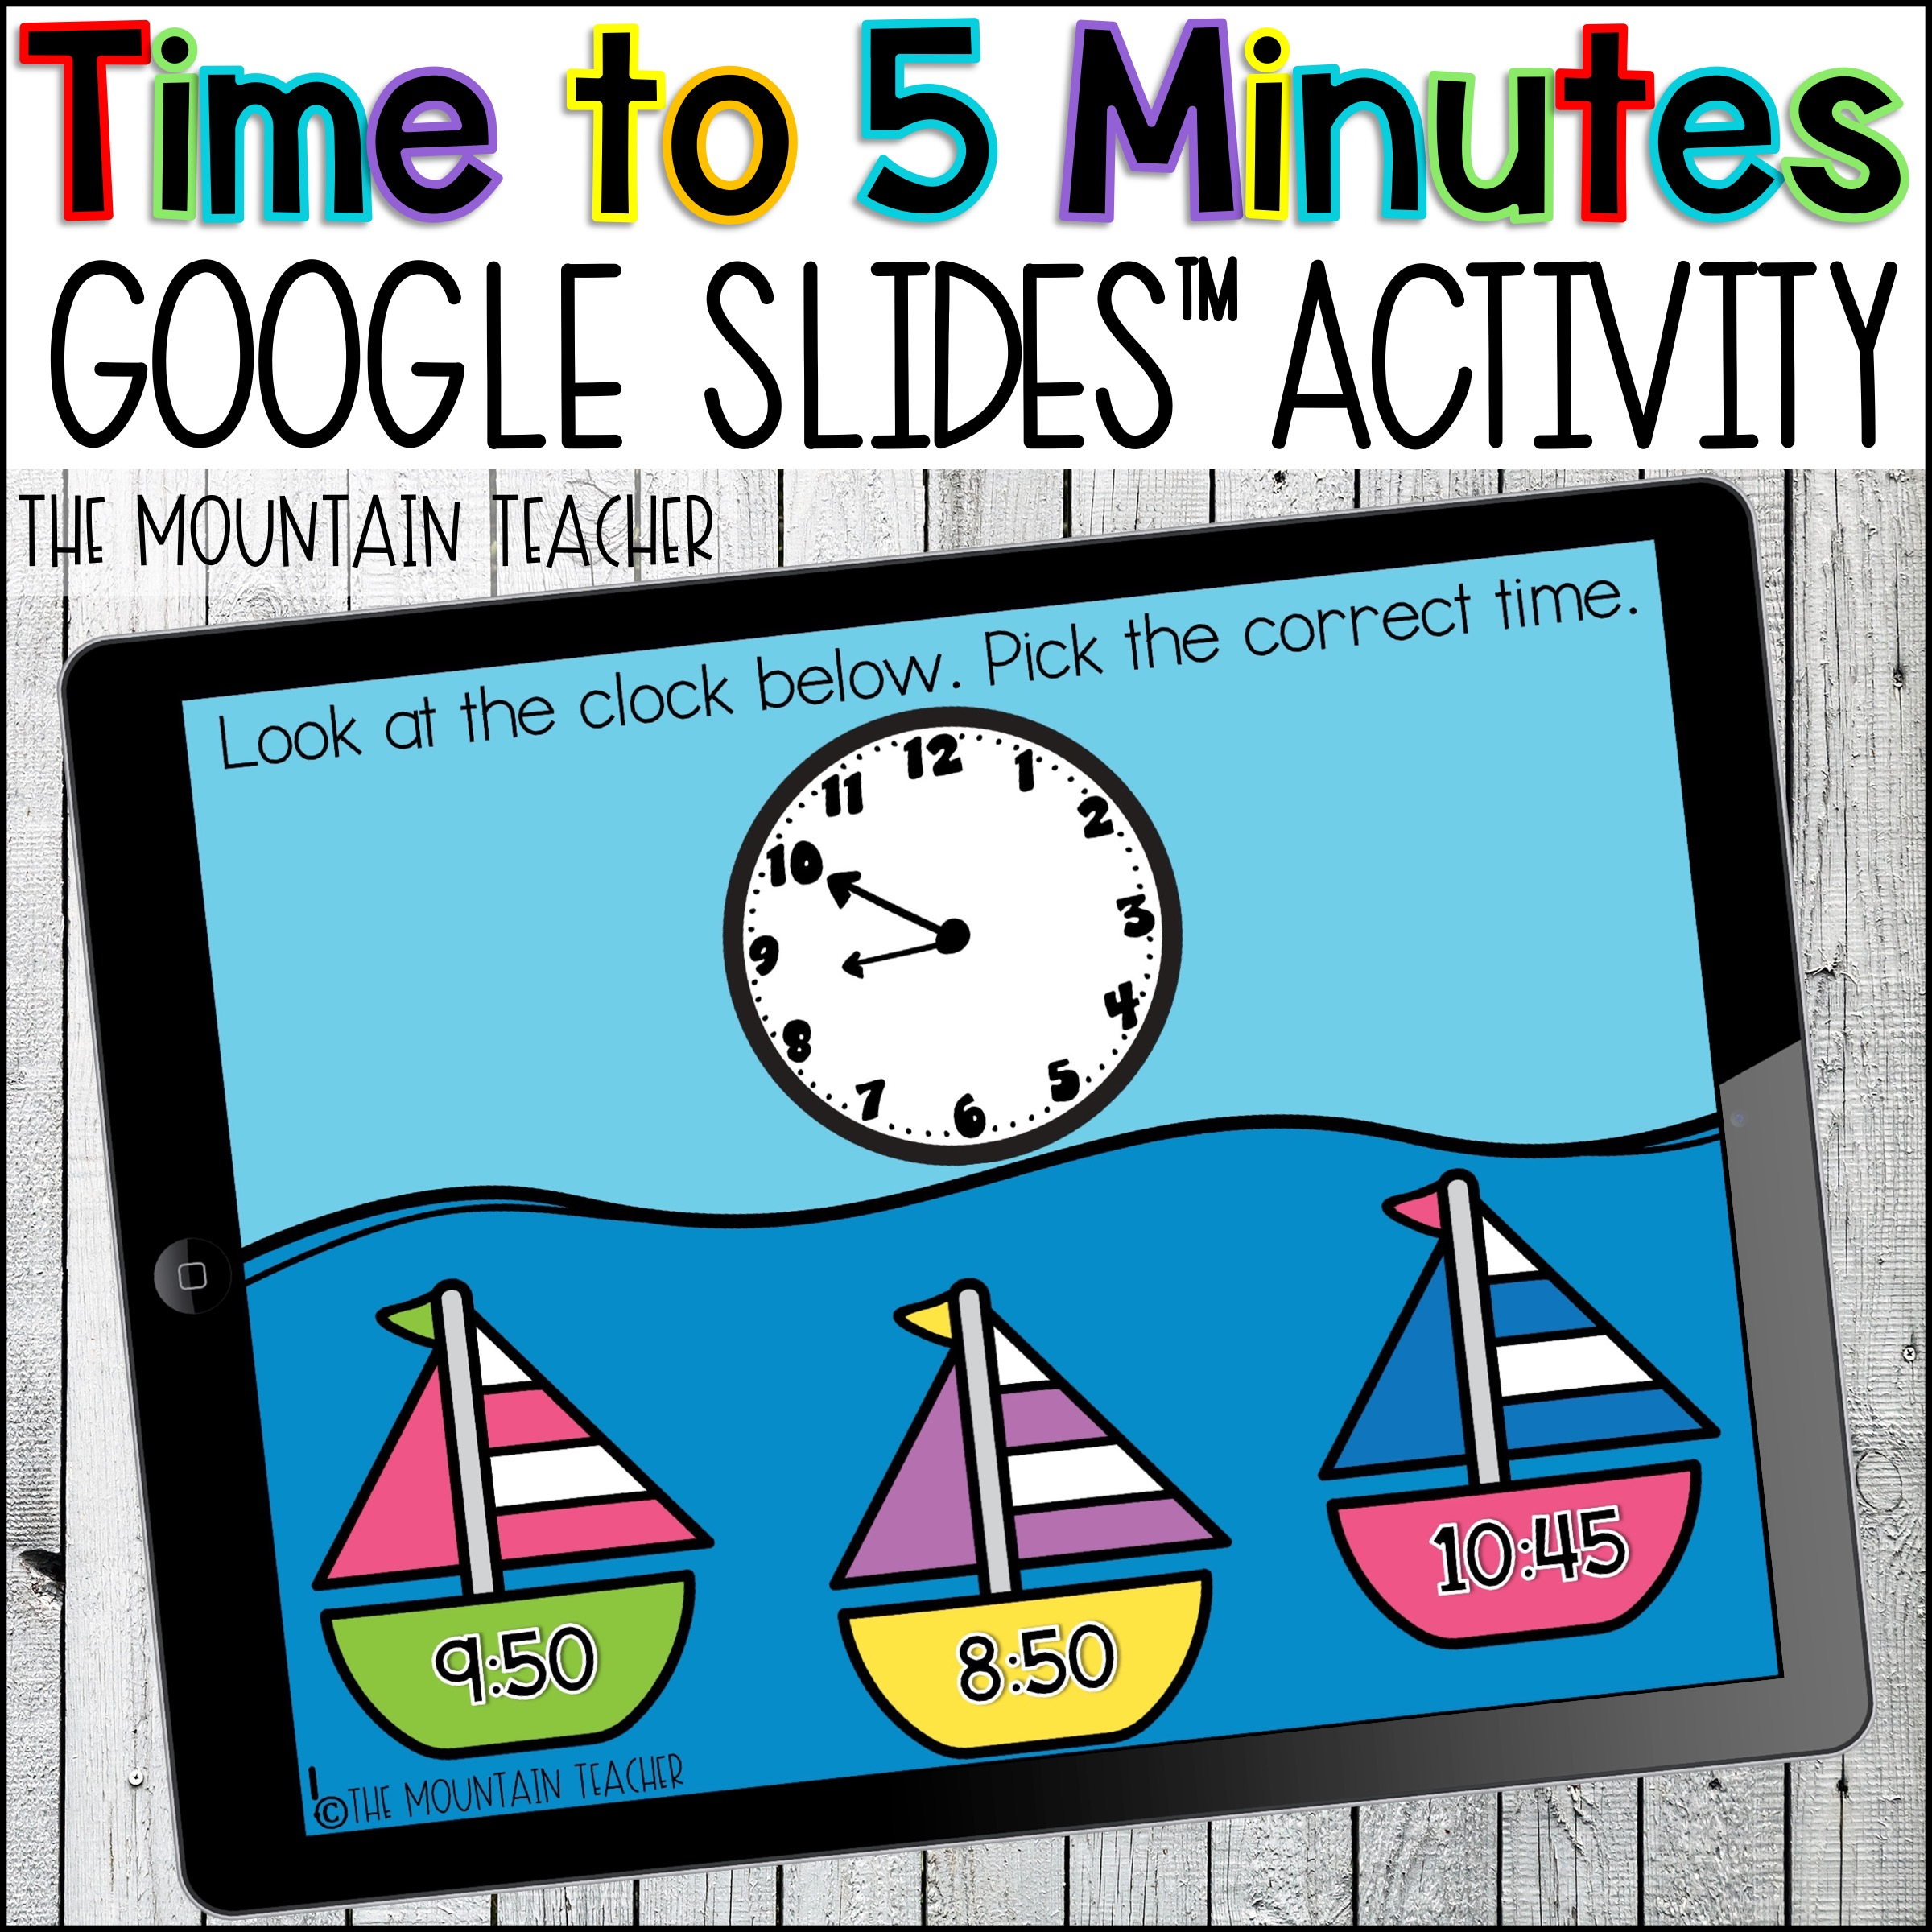 Time to 5 Minutes Google Slides for google Classroom by The Mountain Teacher